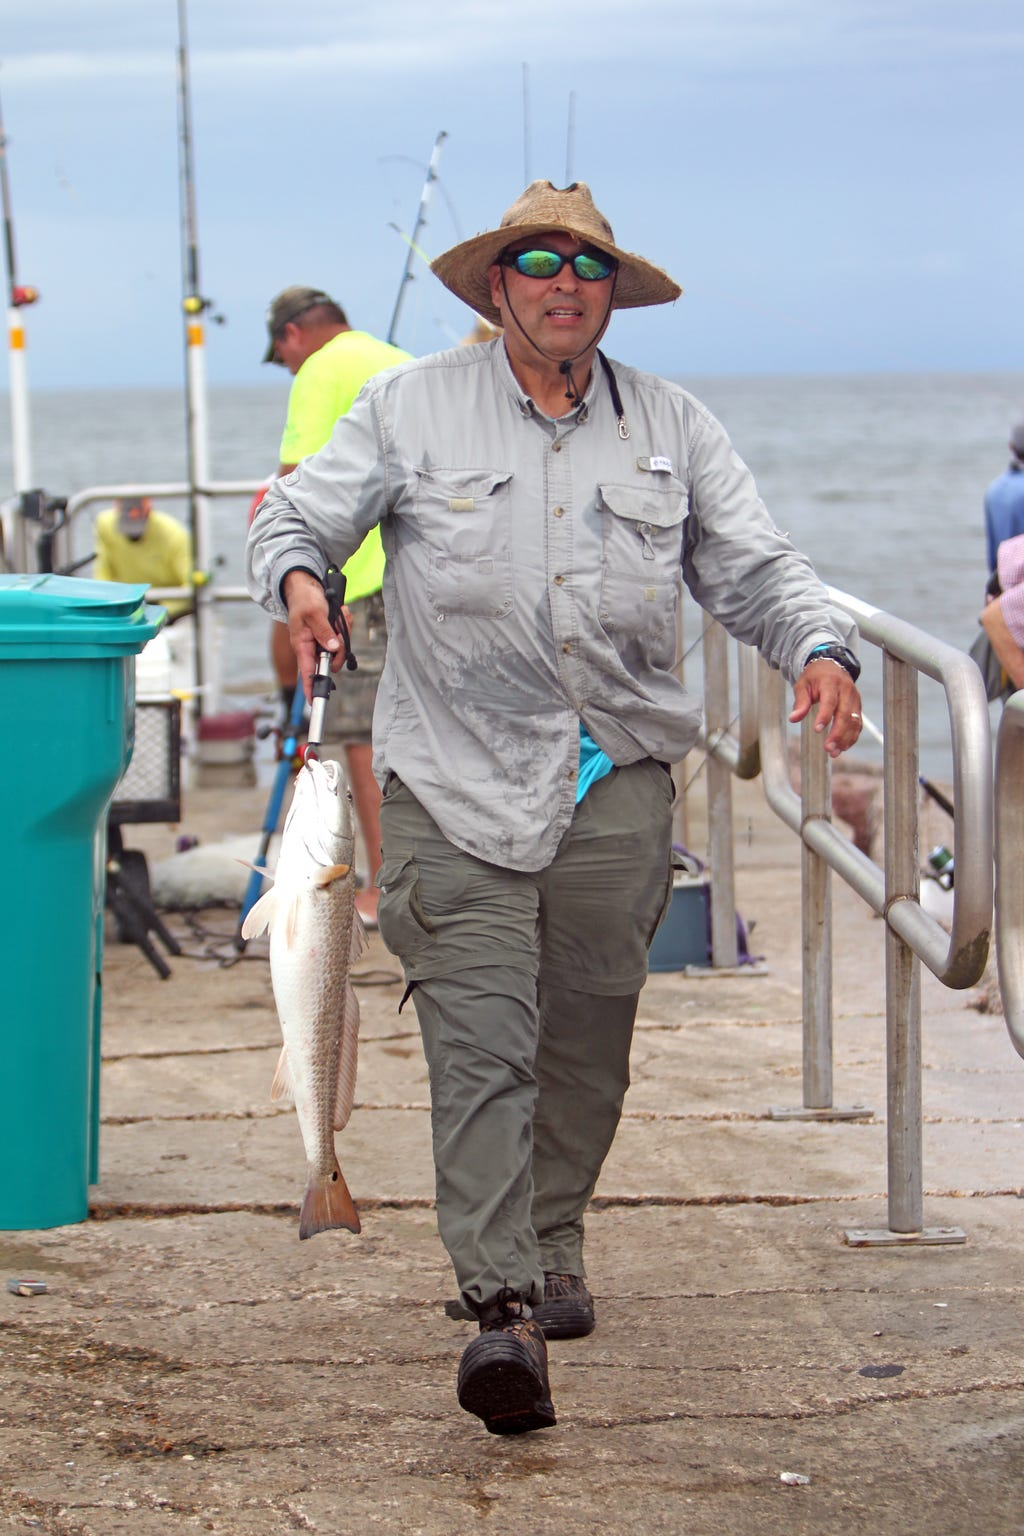 Rarely is a single redfish caught at any given time on the jetty.